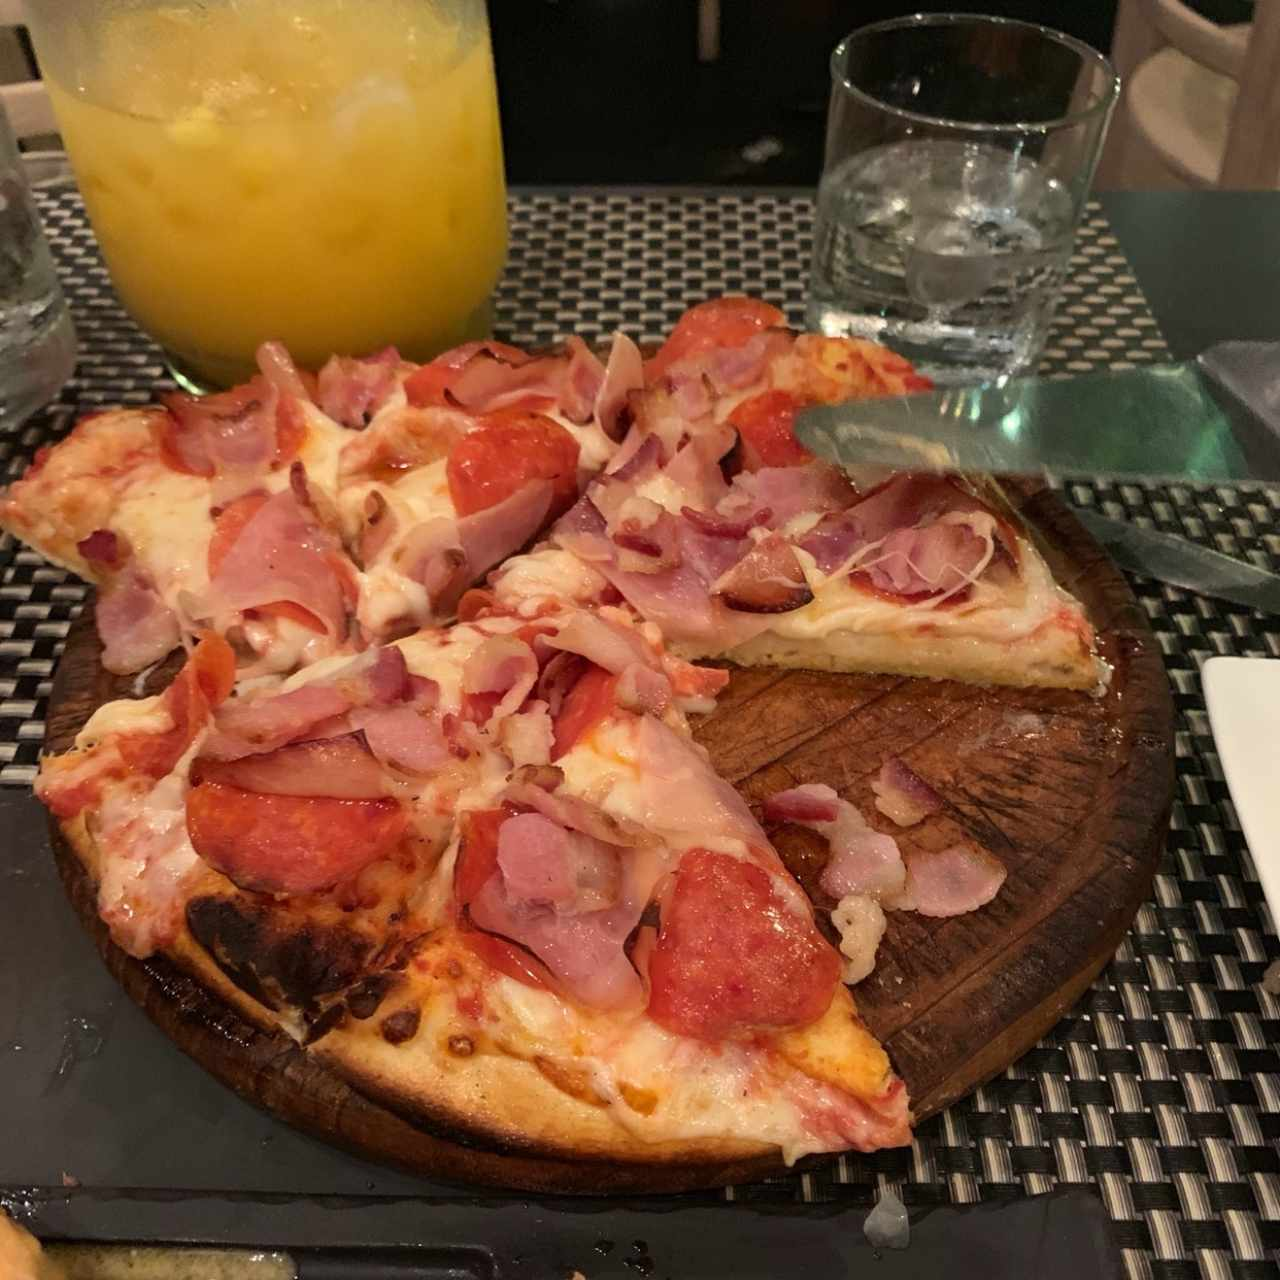 Pizza de jamón, peperoni y bacon